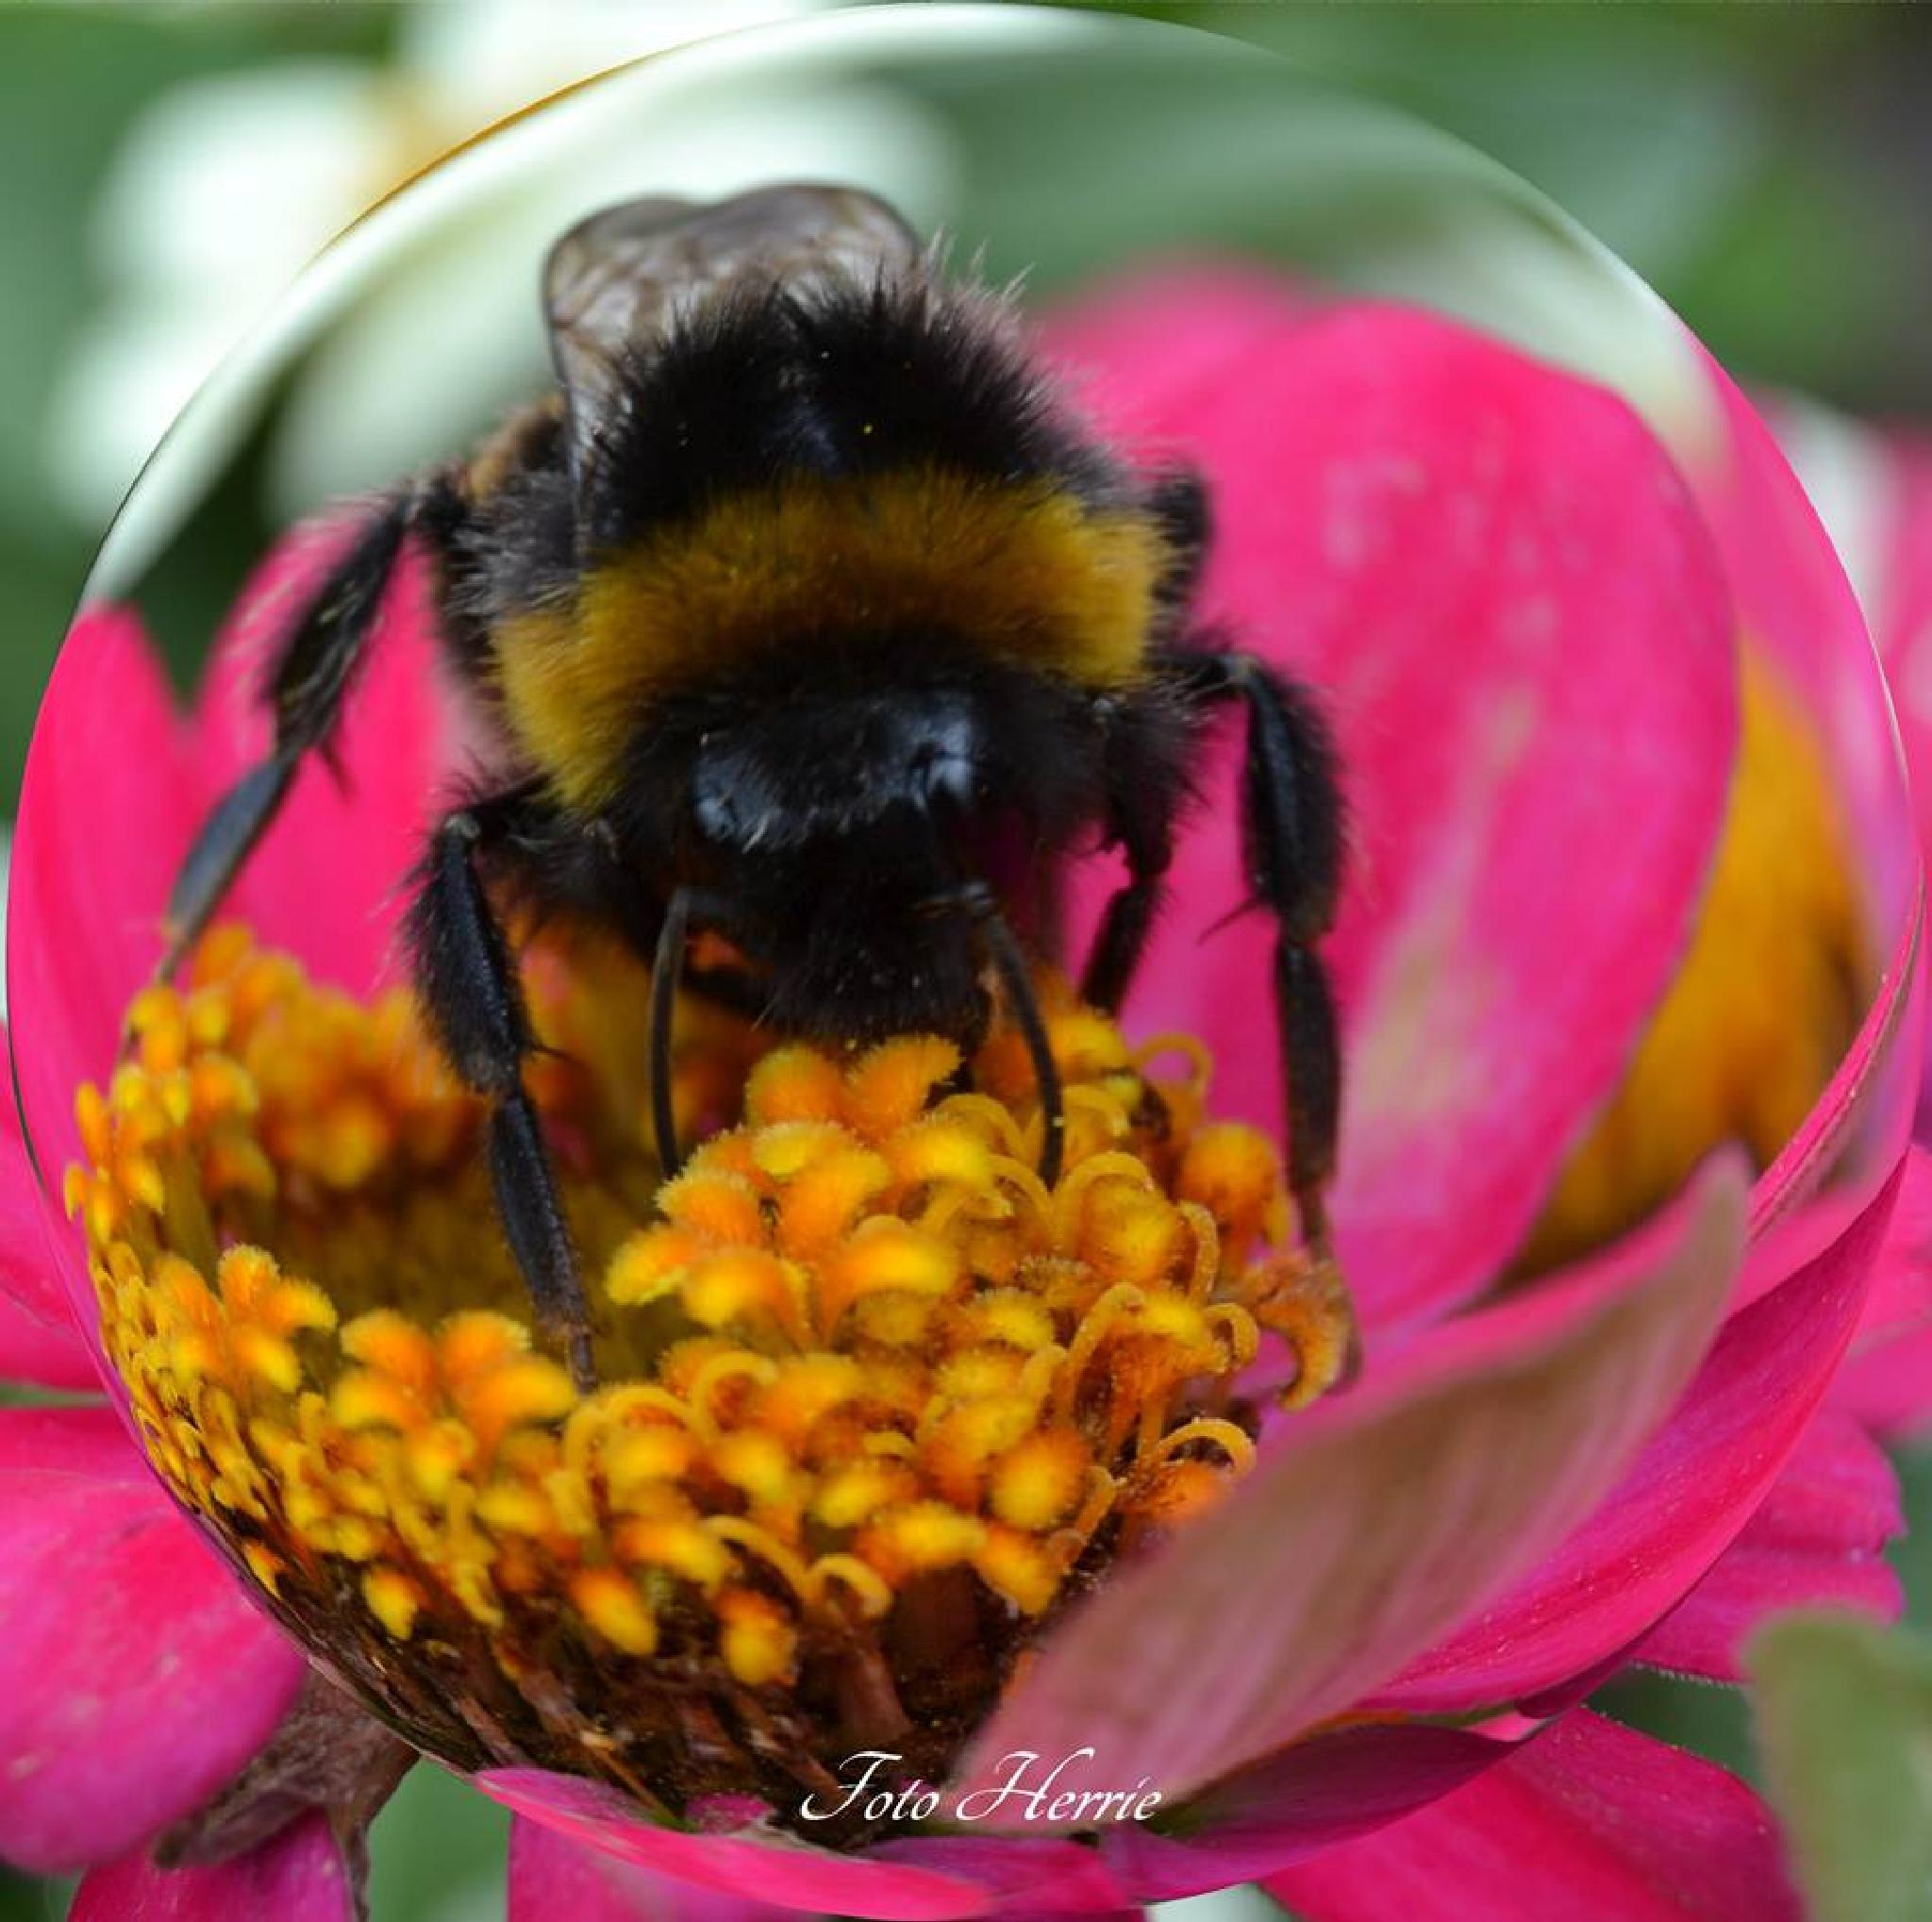 Bumblebee 1 by photoherrieschnoink